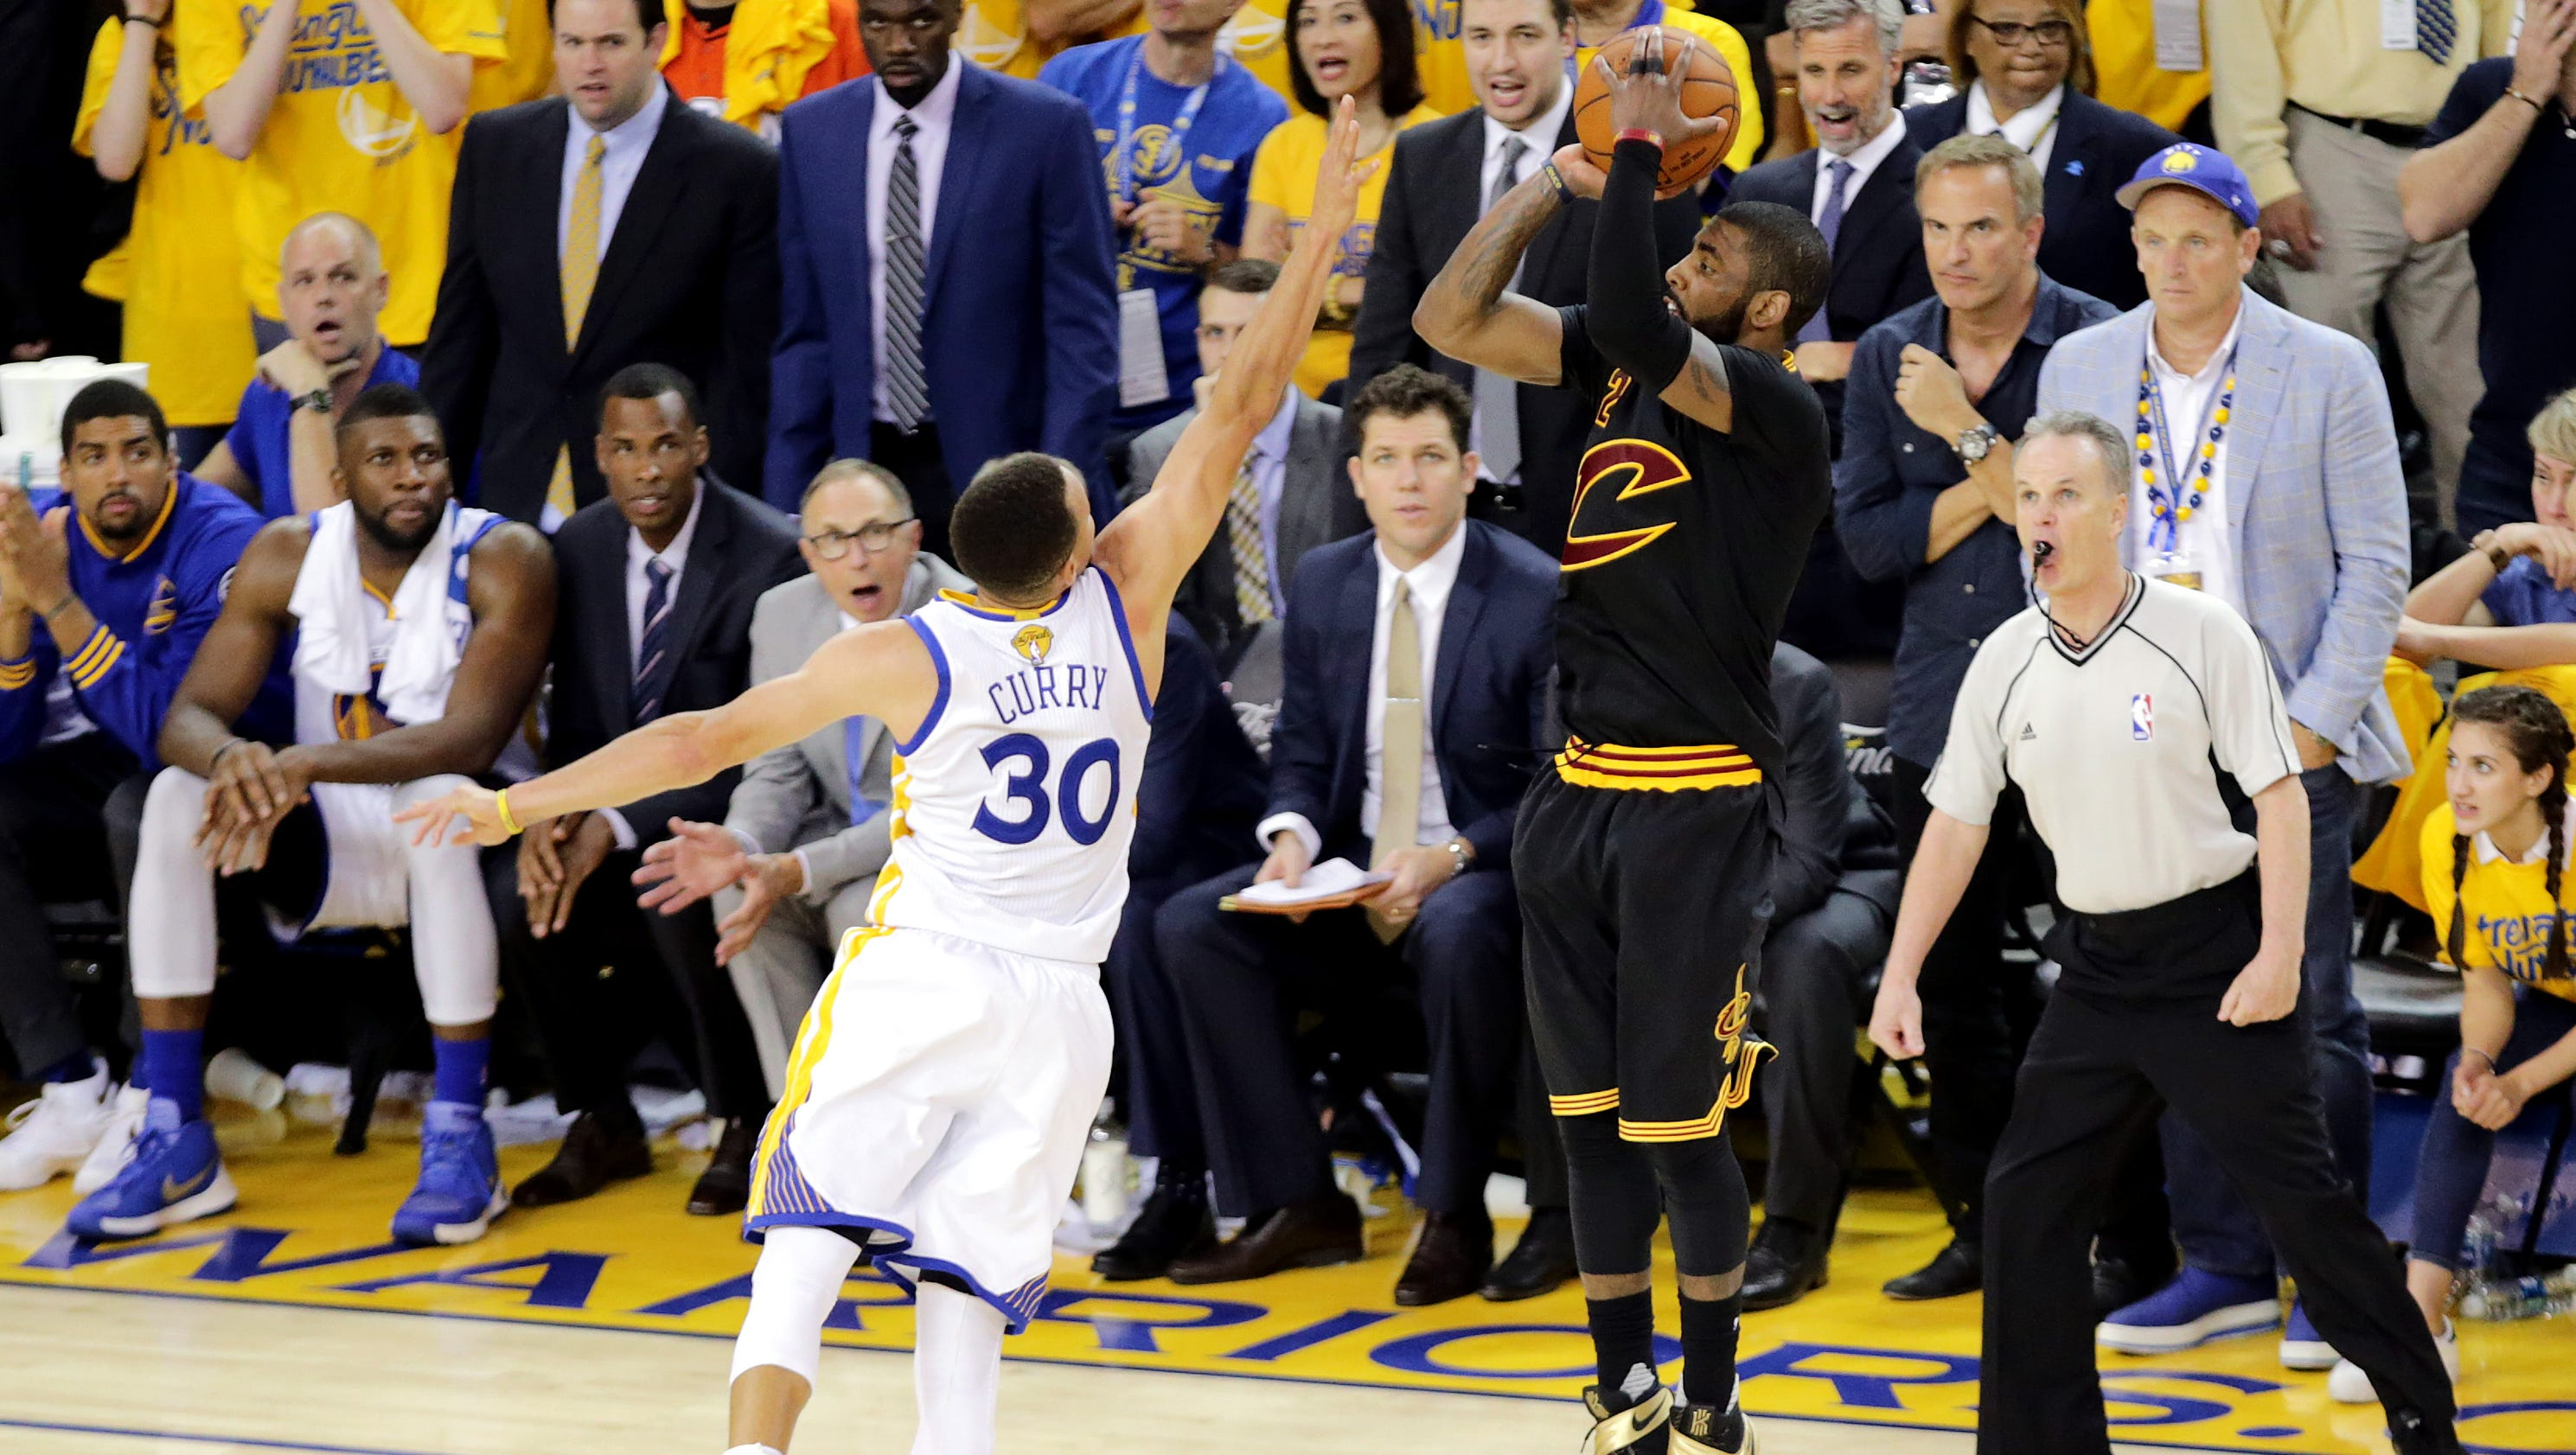 Kyrie Irving's shot sealed Cavaliers' championship over ...